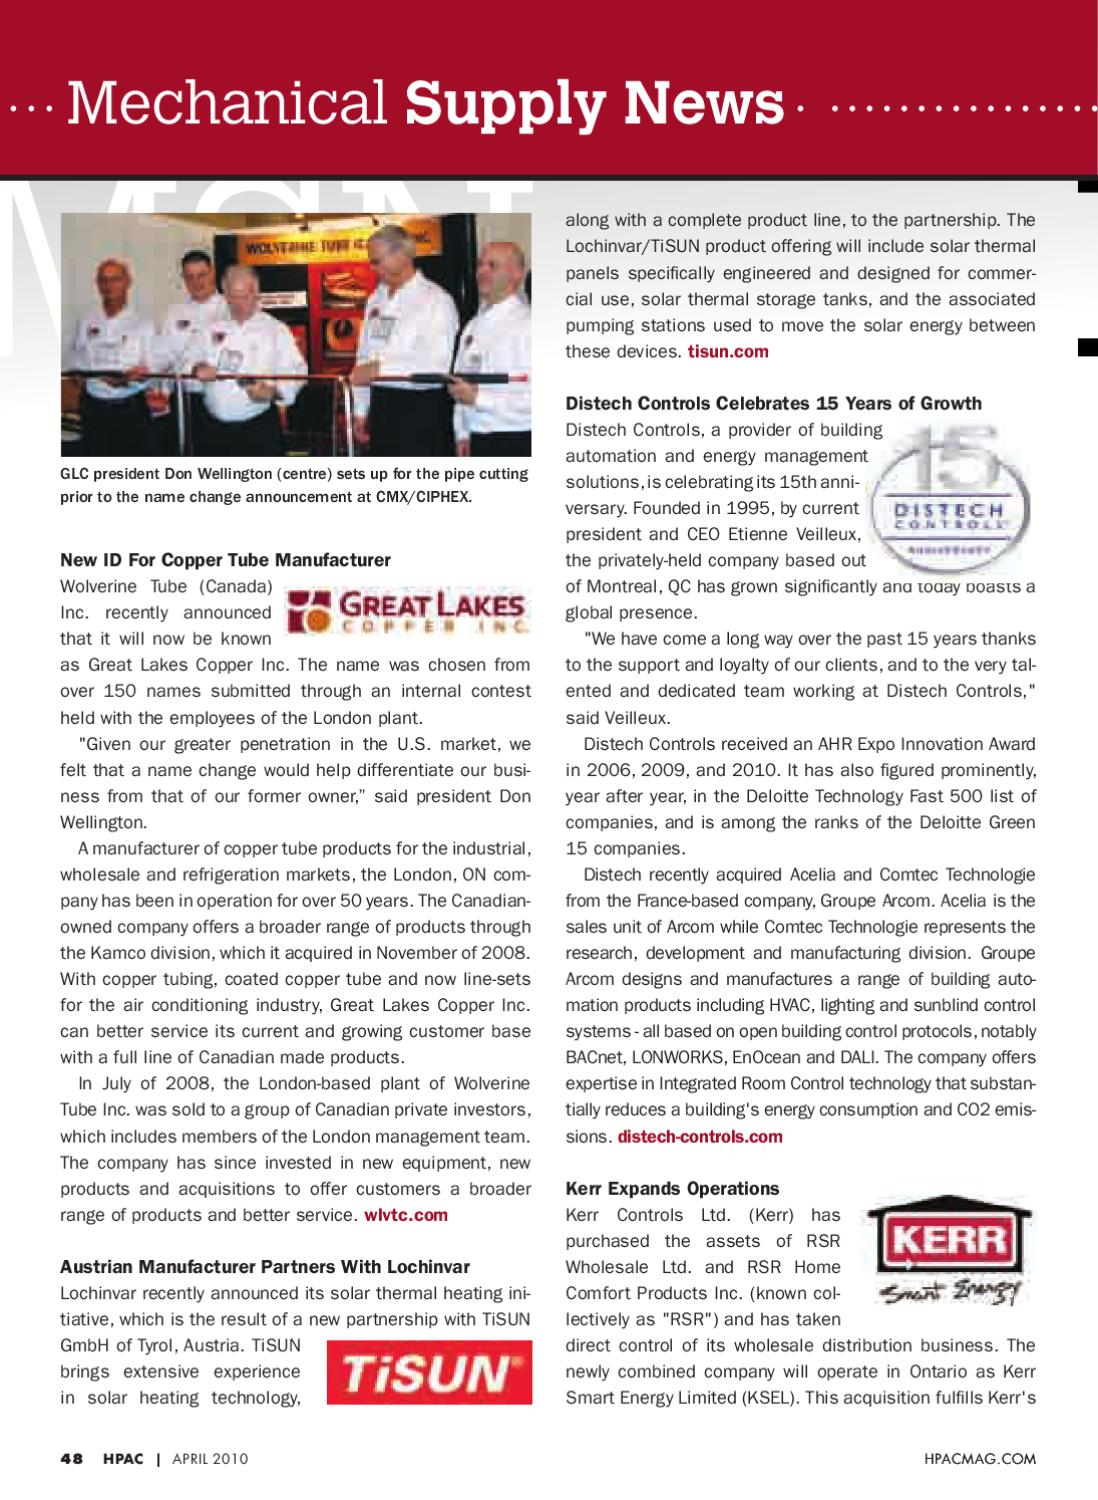 HPAC03_2010 by Annex Business Media - issuu